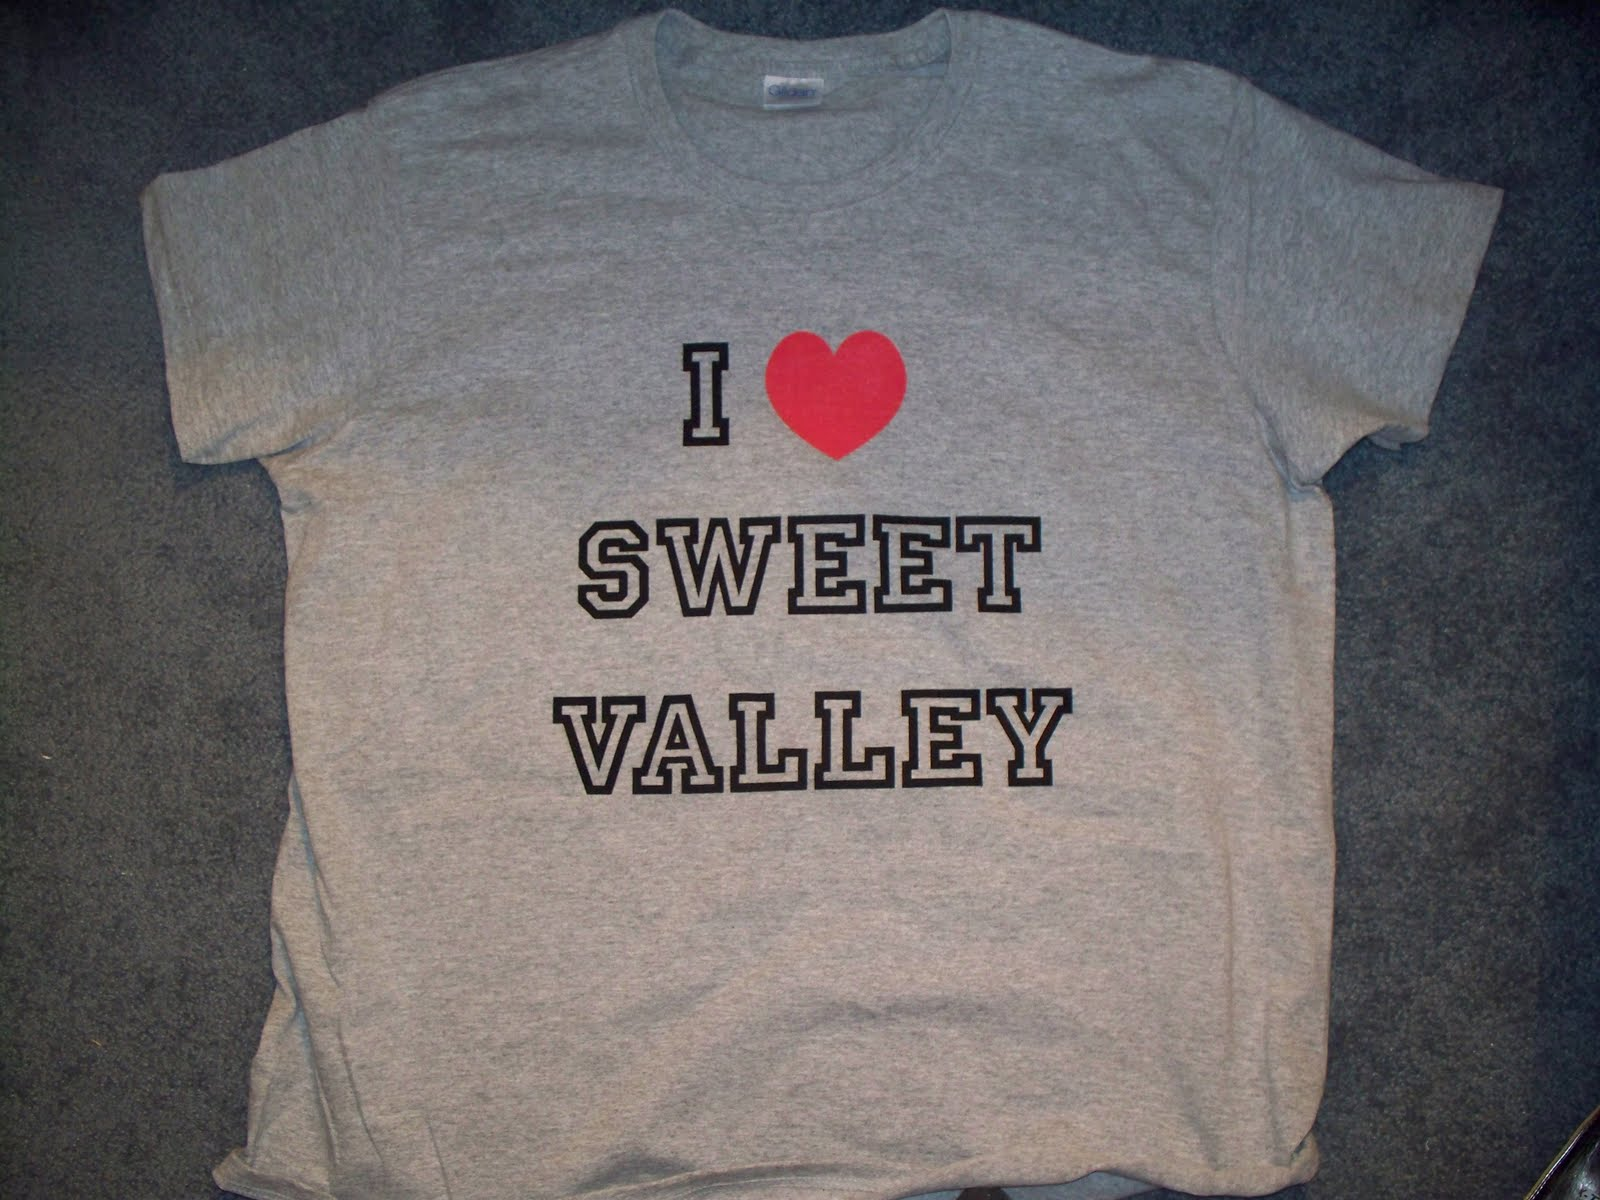 I-want-this-T-shirt-sweet-valley-high-31773939-1600-1200